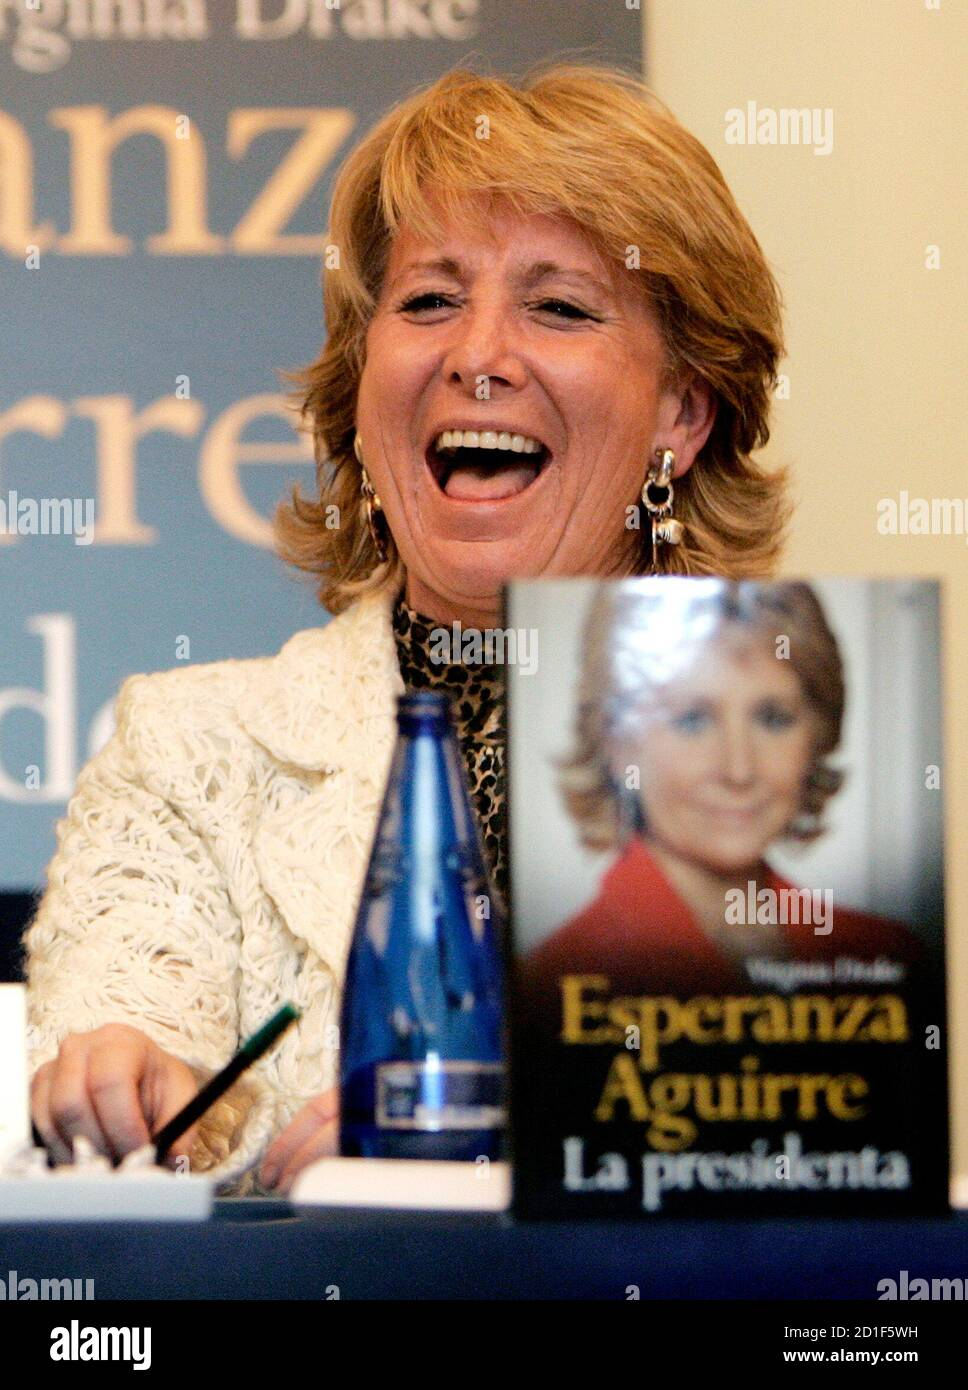 President of Madrid's regional government Esperanza Aguirre laughs during the presentation of her biography 'Esperanza Aguirre La Presidenta' in Madrid November 28, 2006.  REUTERS/Andrea Comas  (SPAIN) Foto Stock